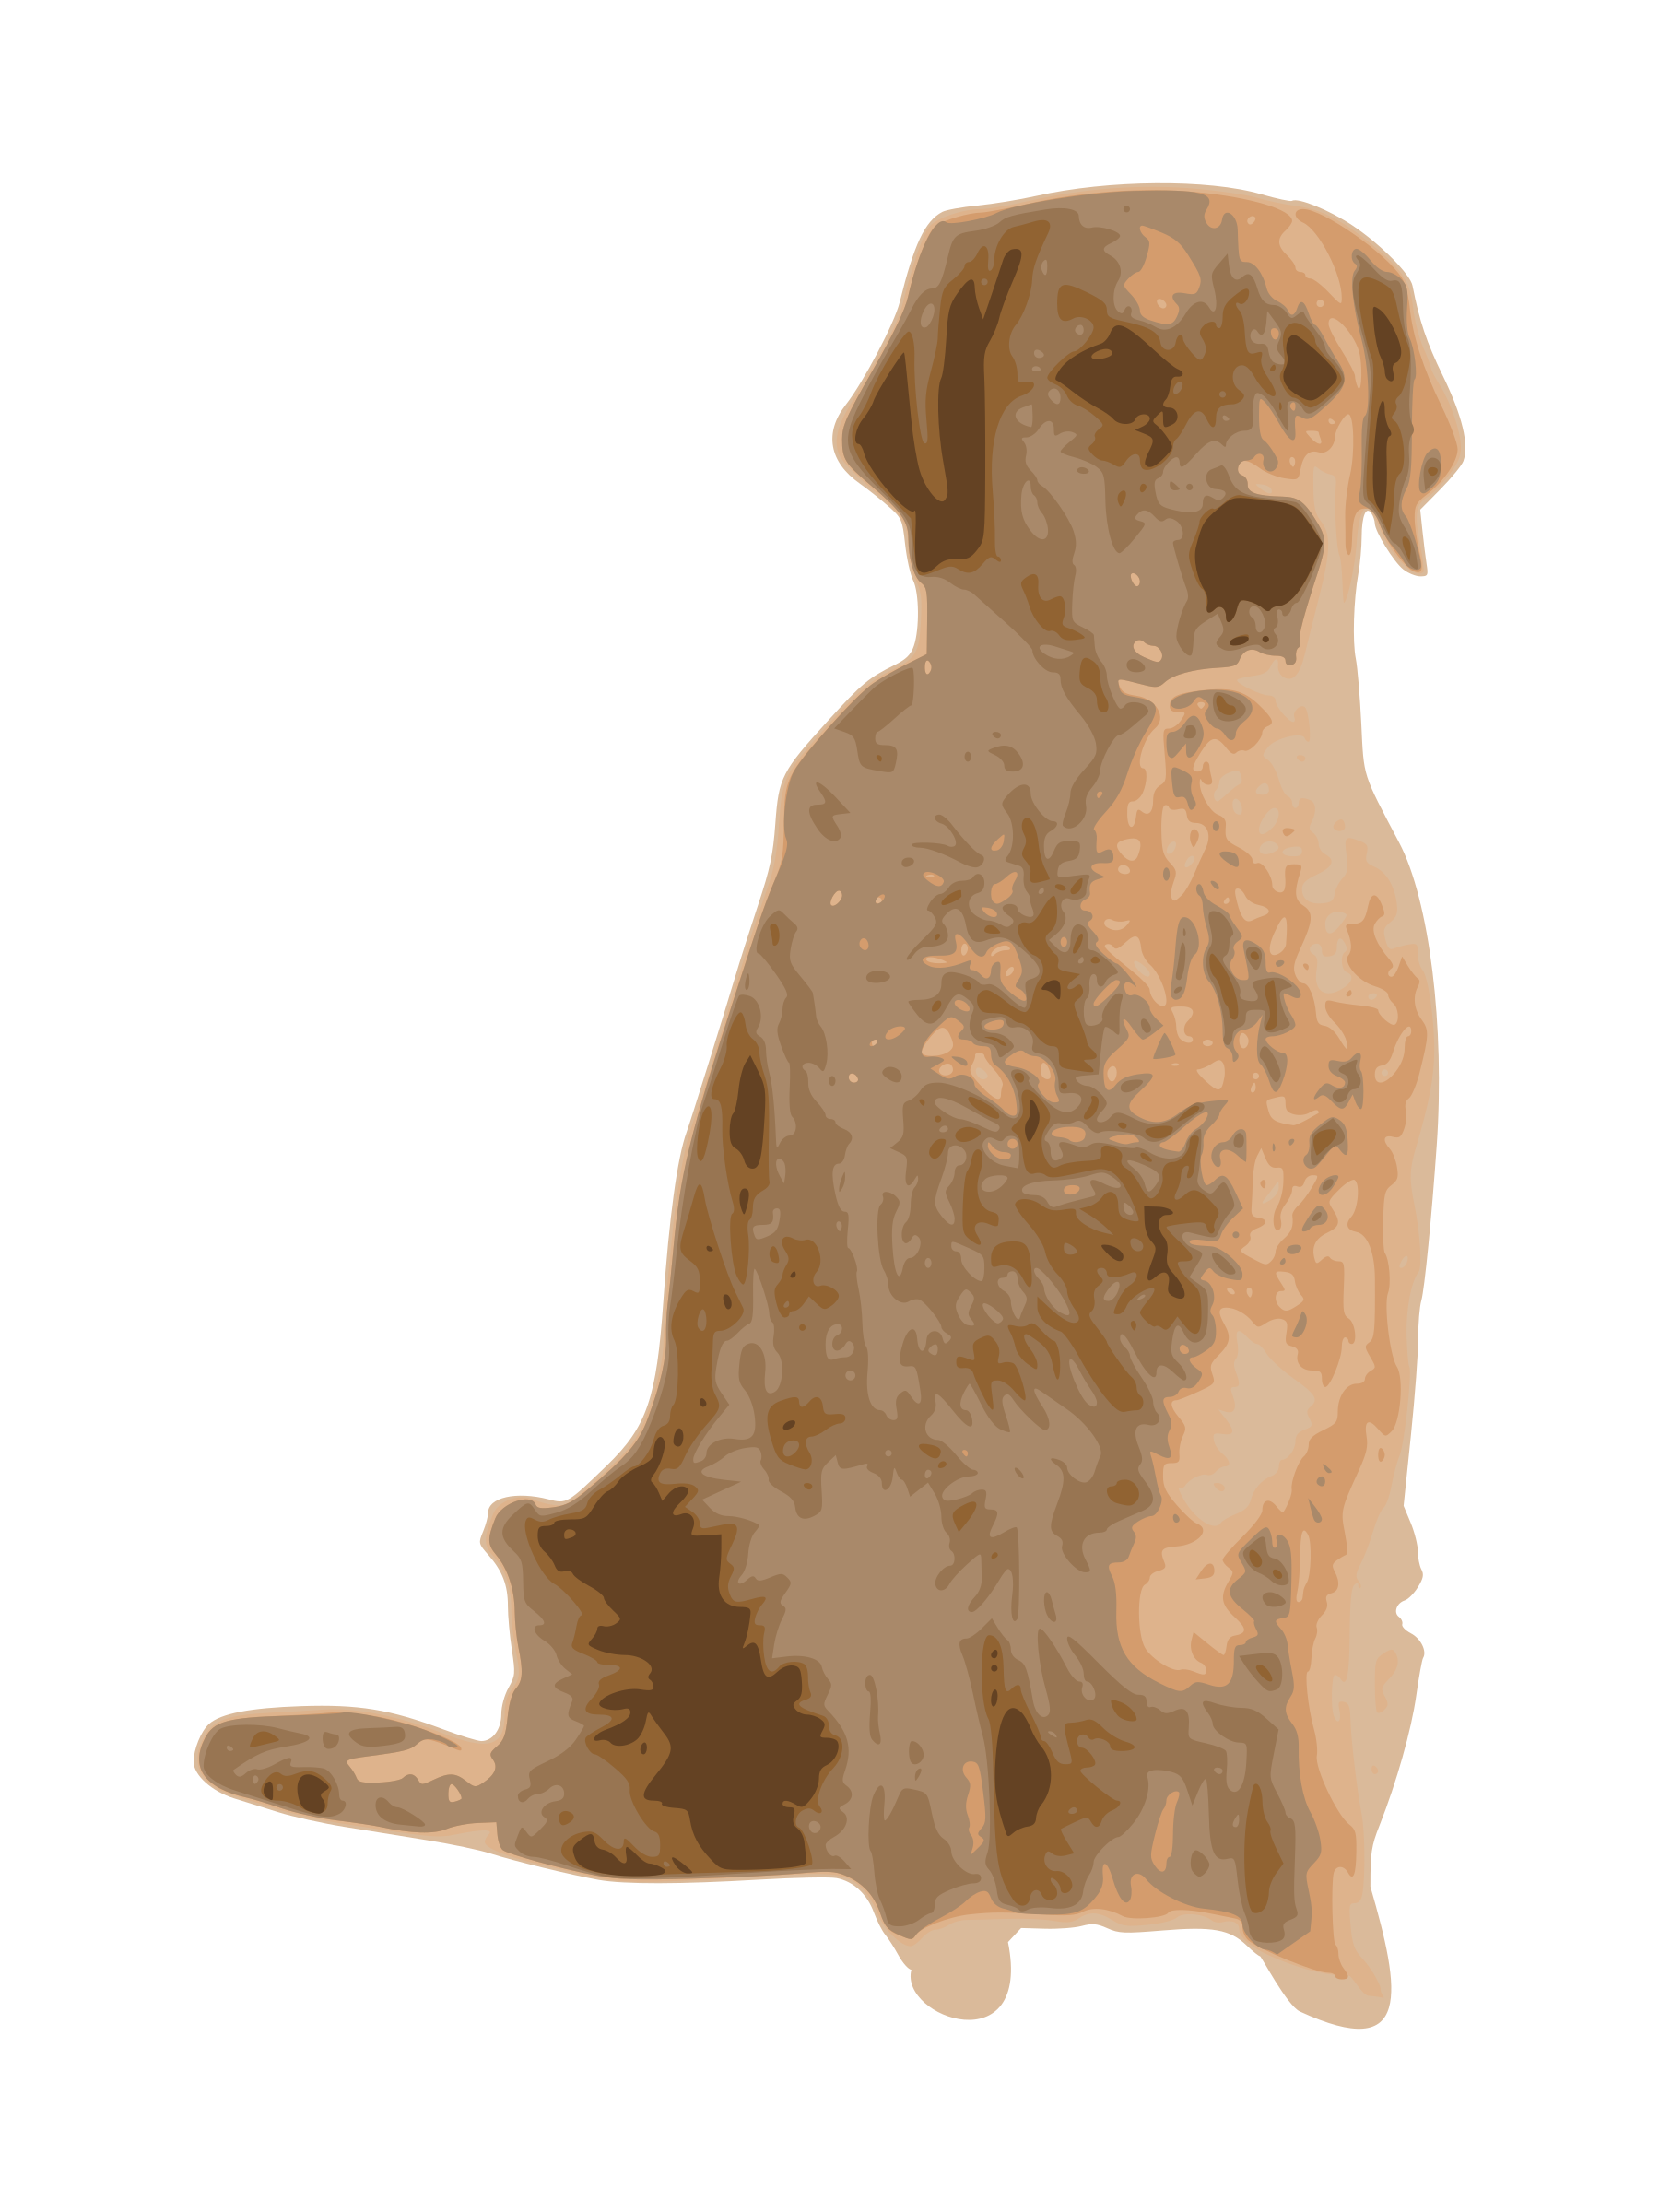 clip art black and white download . Golden retriever clipart behind